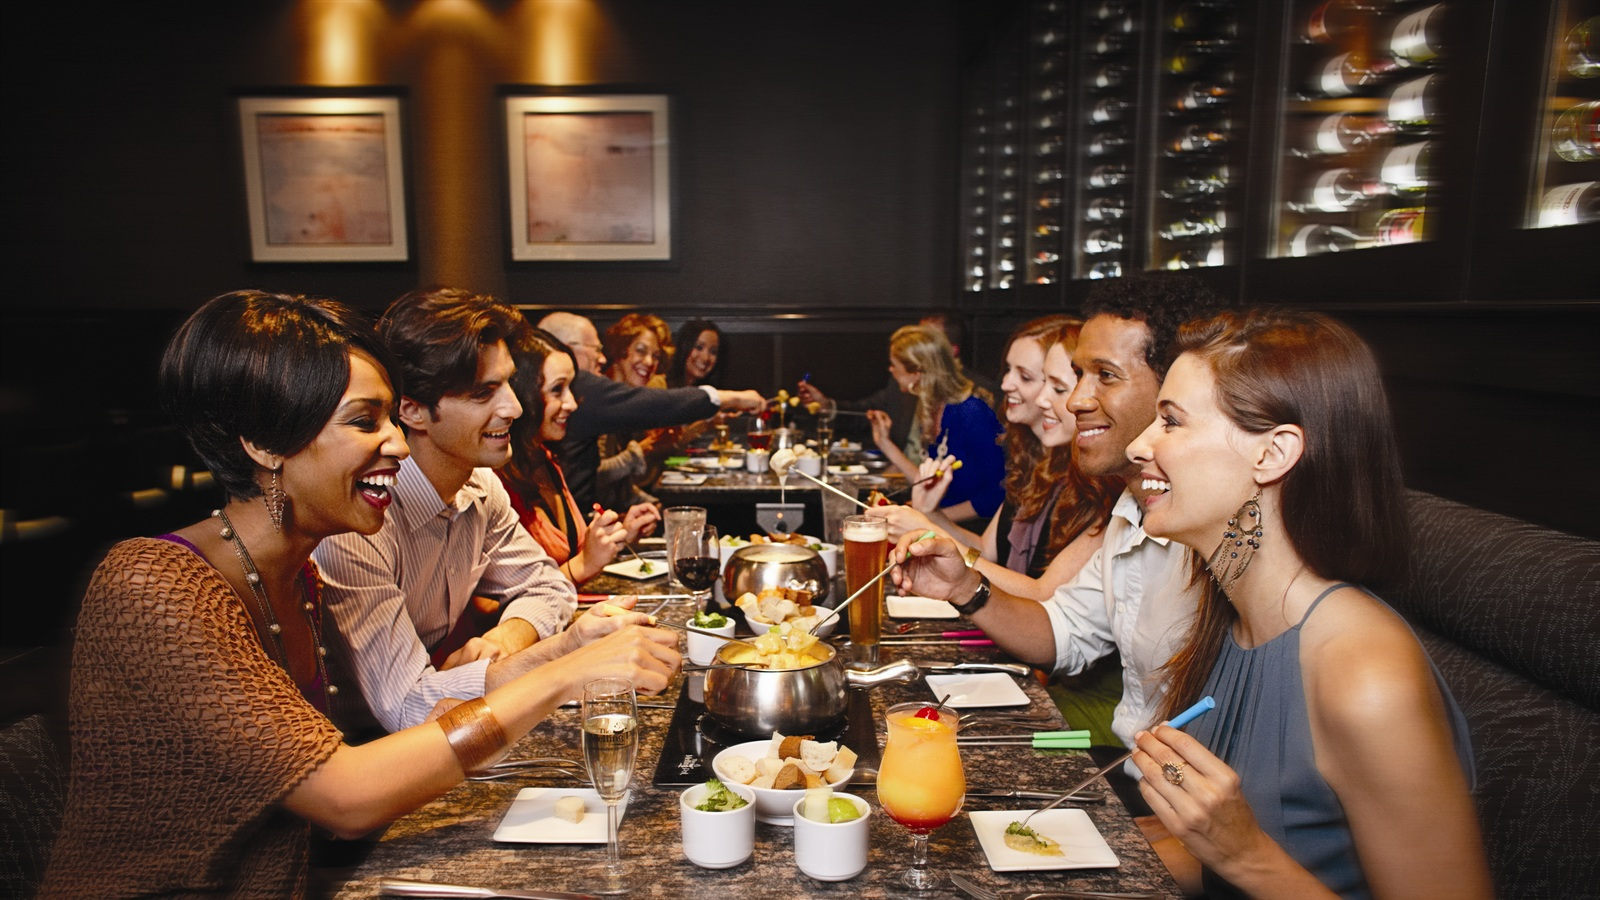 Party Venue At Melting Pot Jacksonville Florida Create